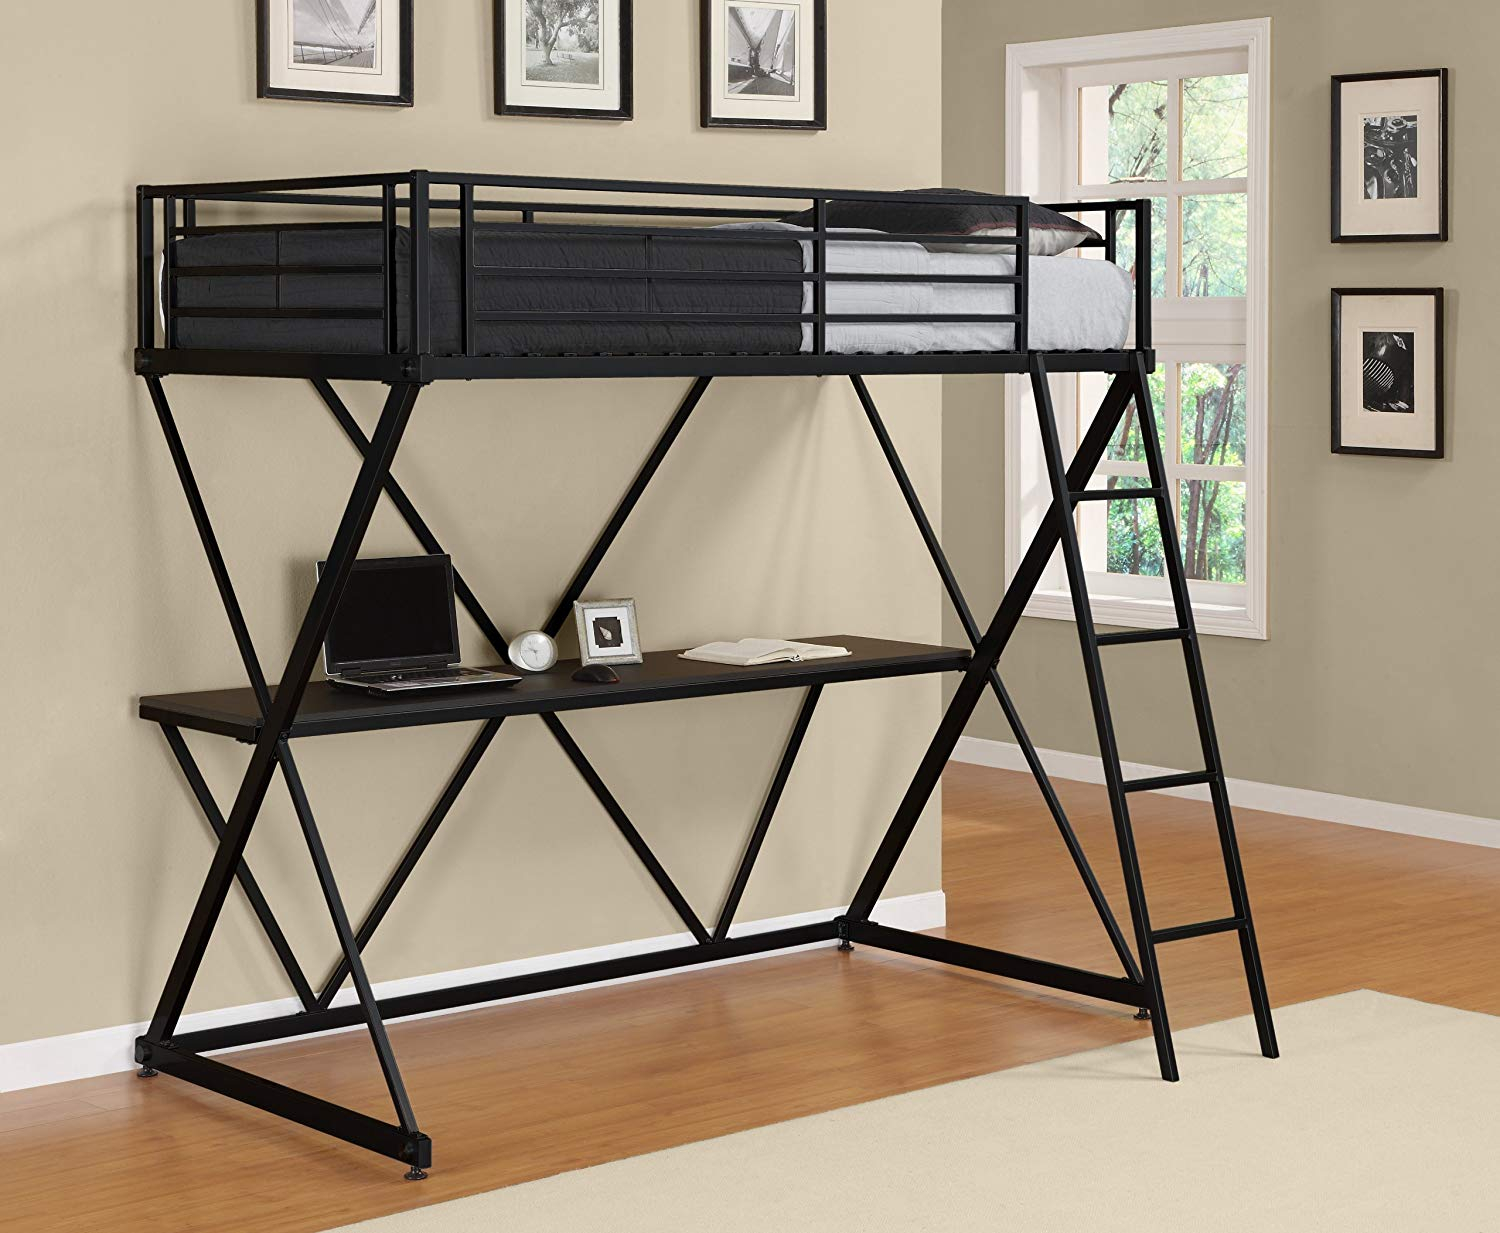 DHP X-Loft Metal Twin Bunk Bed Frame with Desk - Space Saving Design